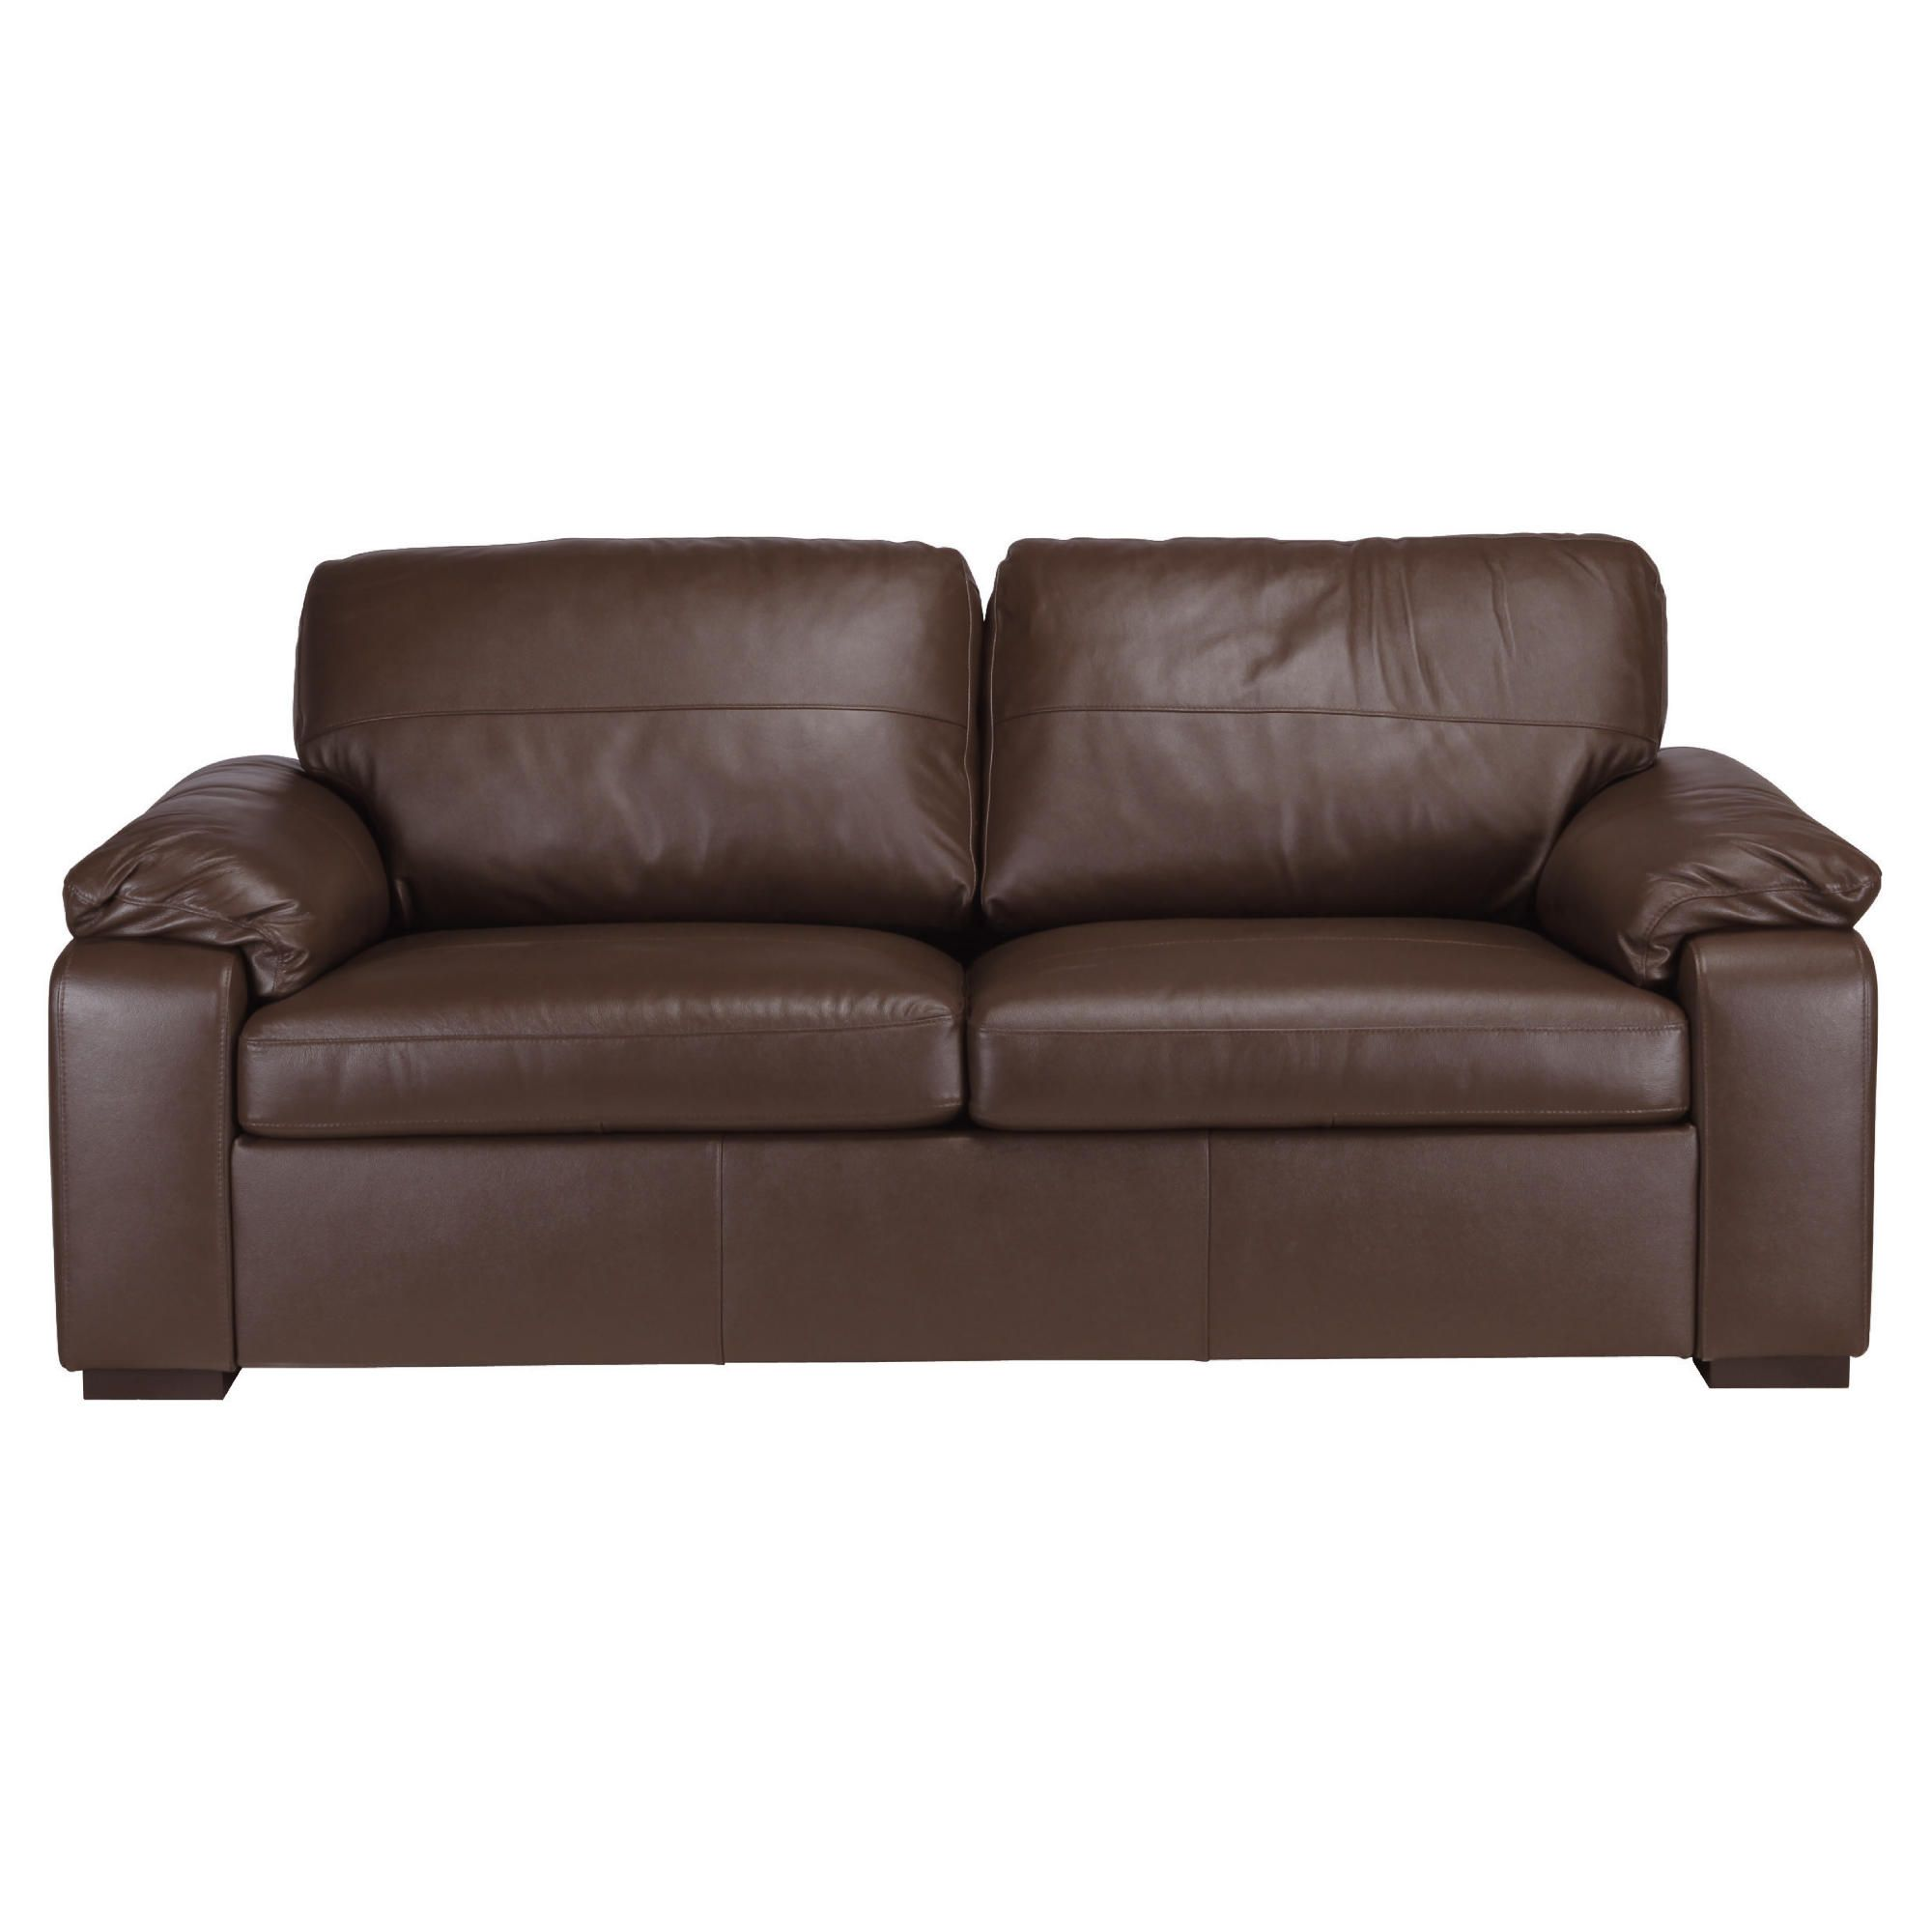 Home And Garden Furniture Ashmore Leather Sofa Bed Brown Special Offers